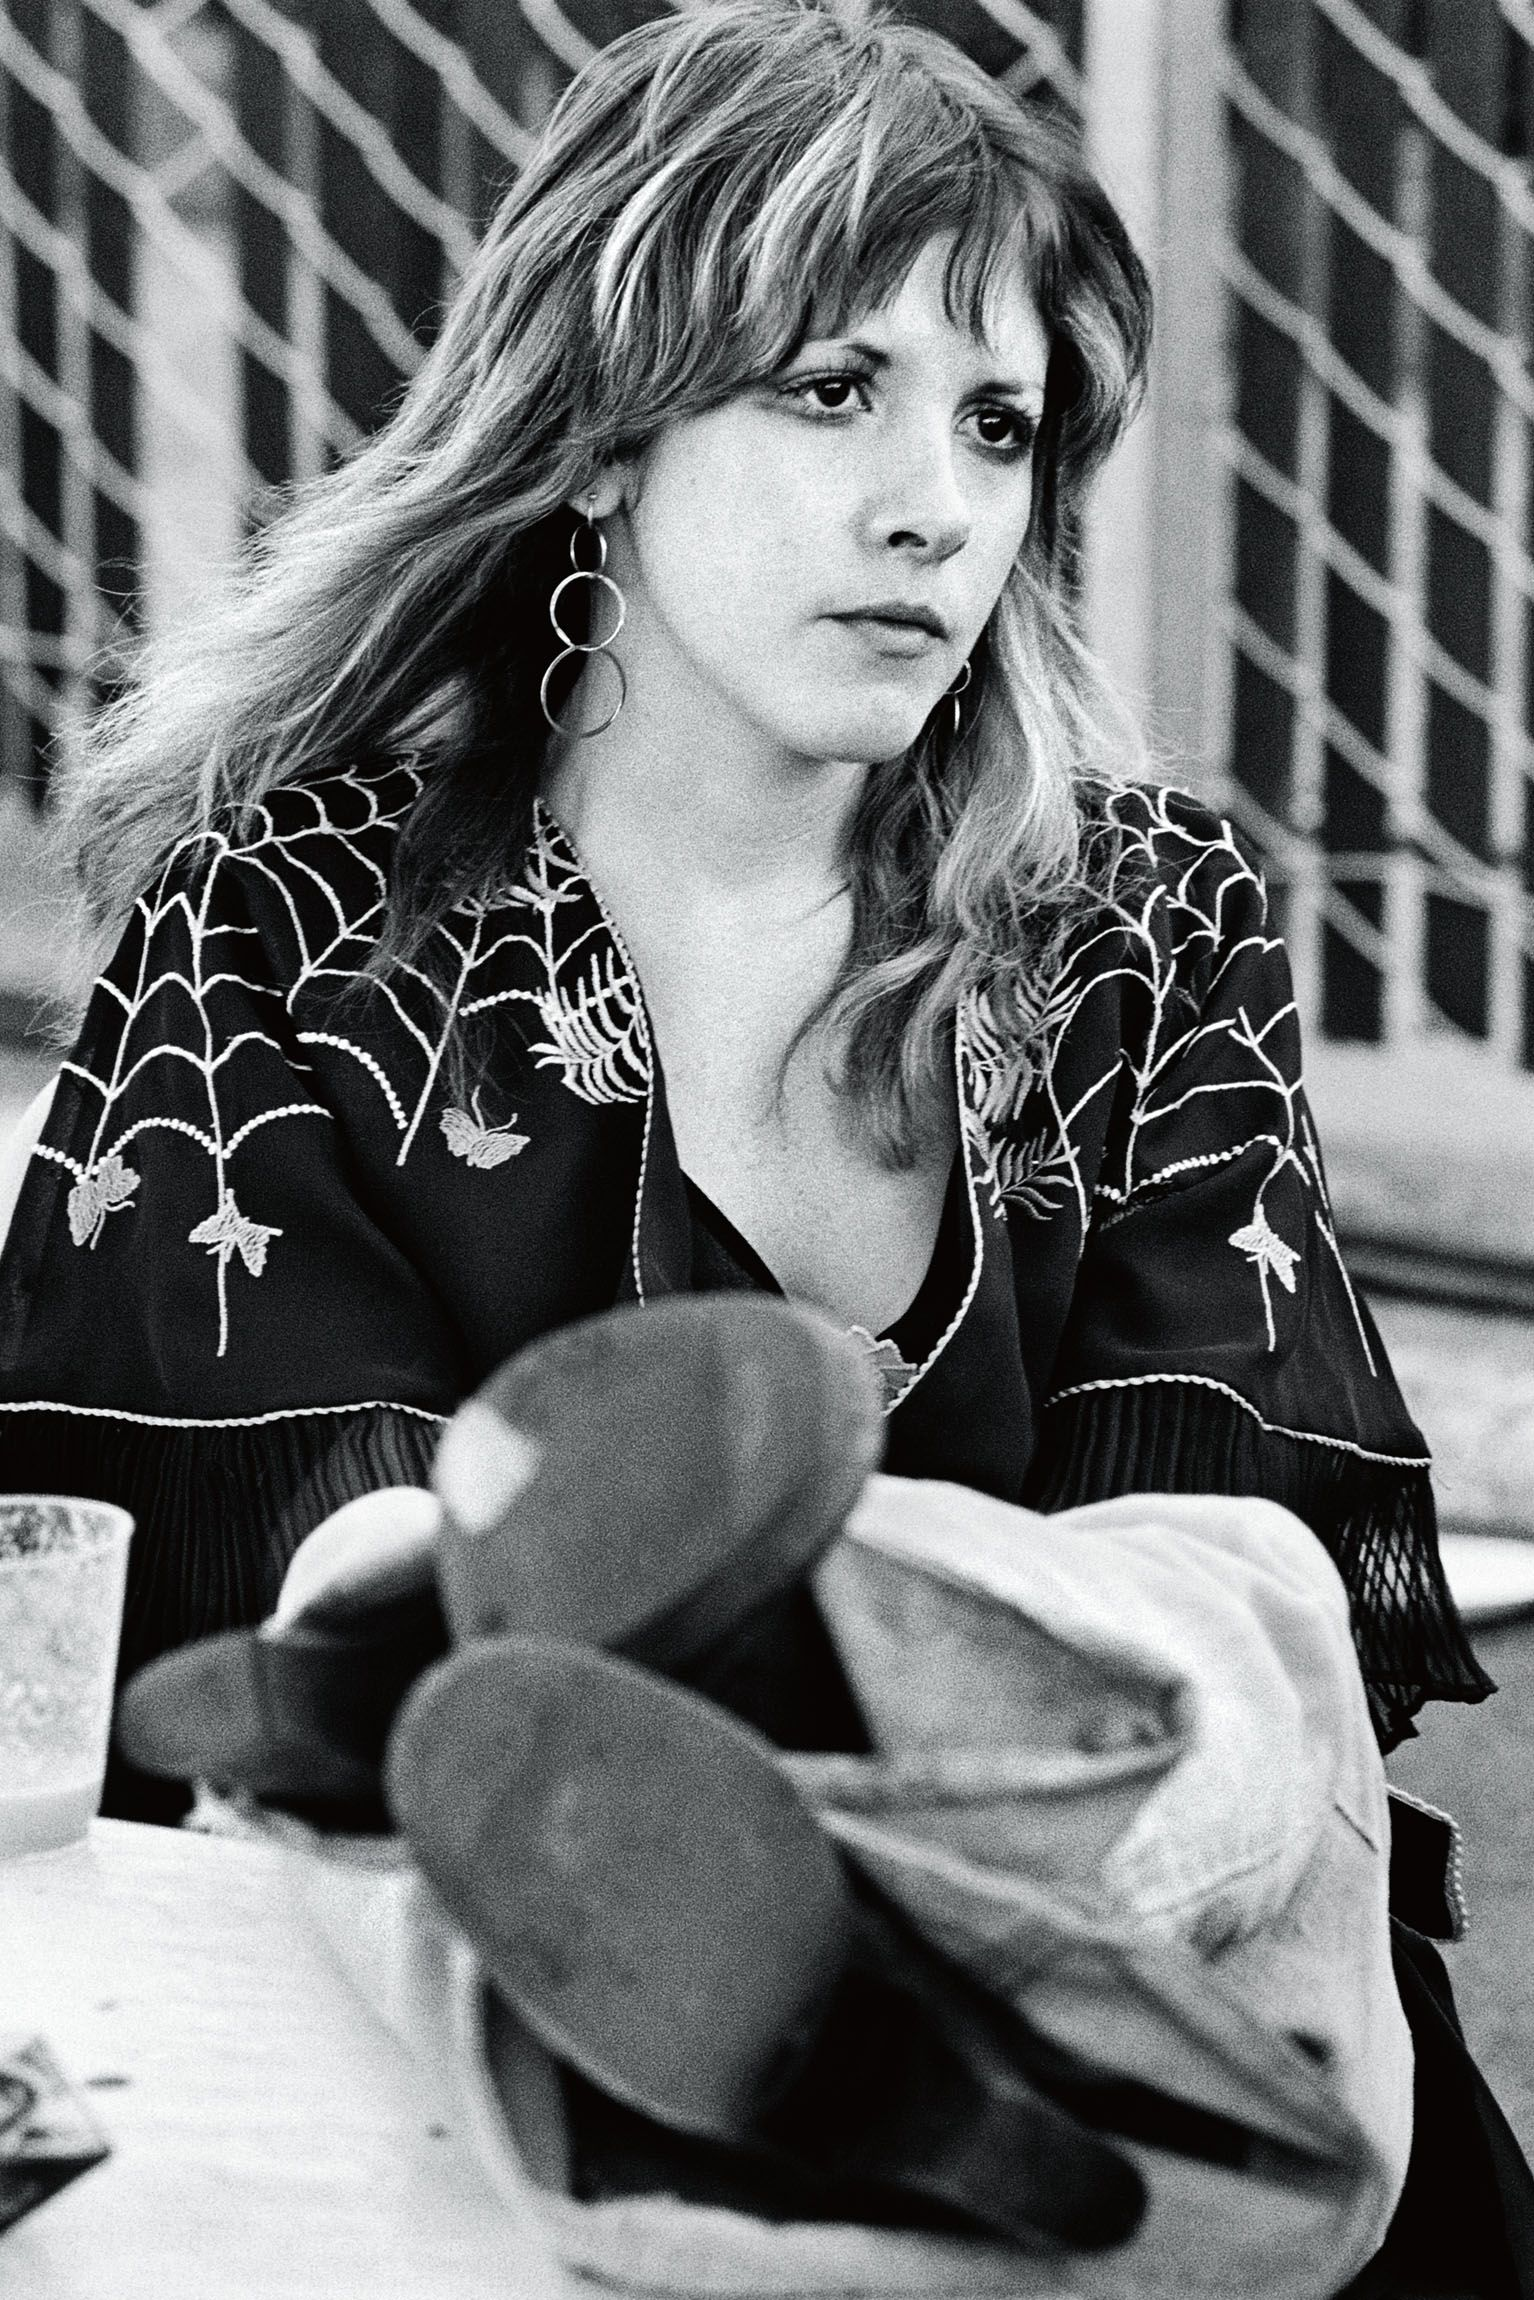 Stevie Nicks in 1976 between sets at Day on the Green, a recurring concert that took place in Oakland, California.